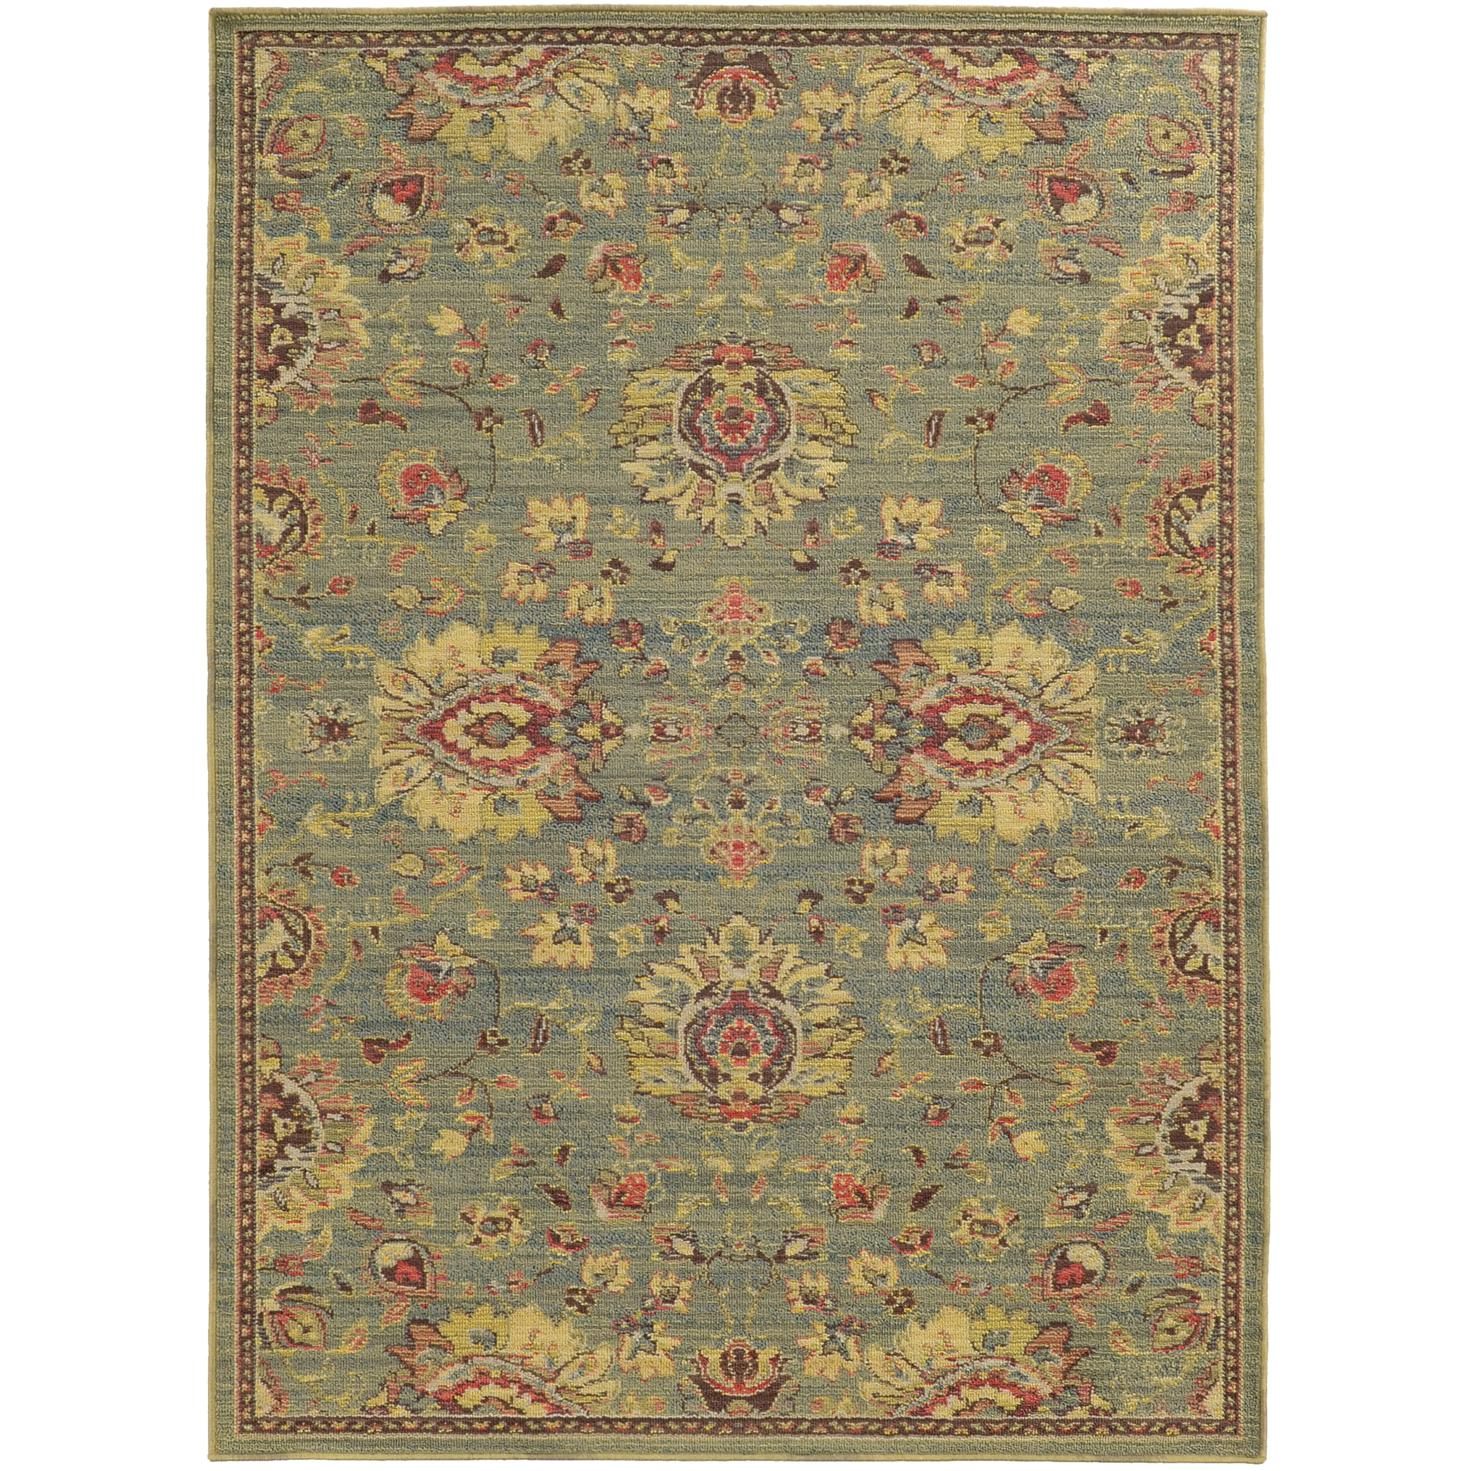 12 X 12 Outdoor Rug Search